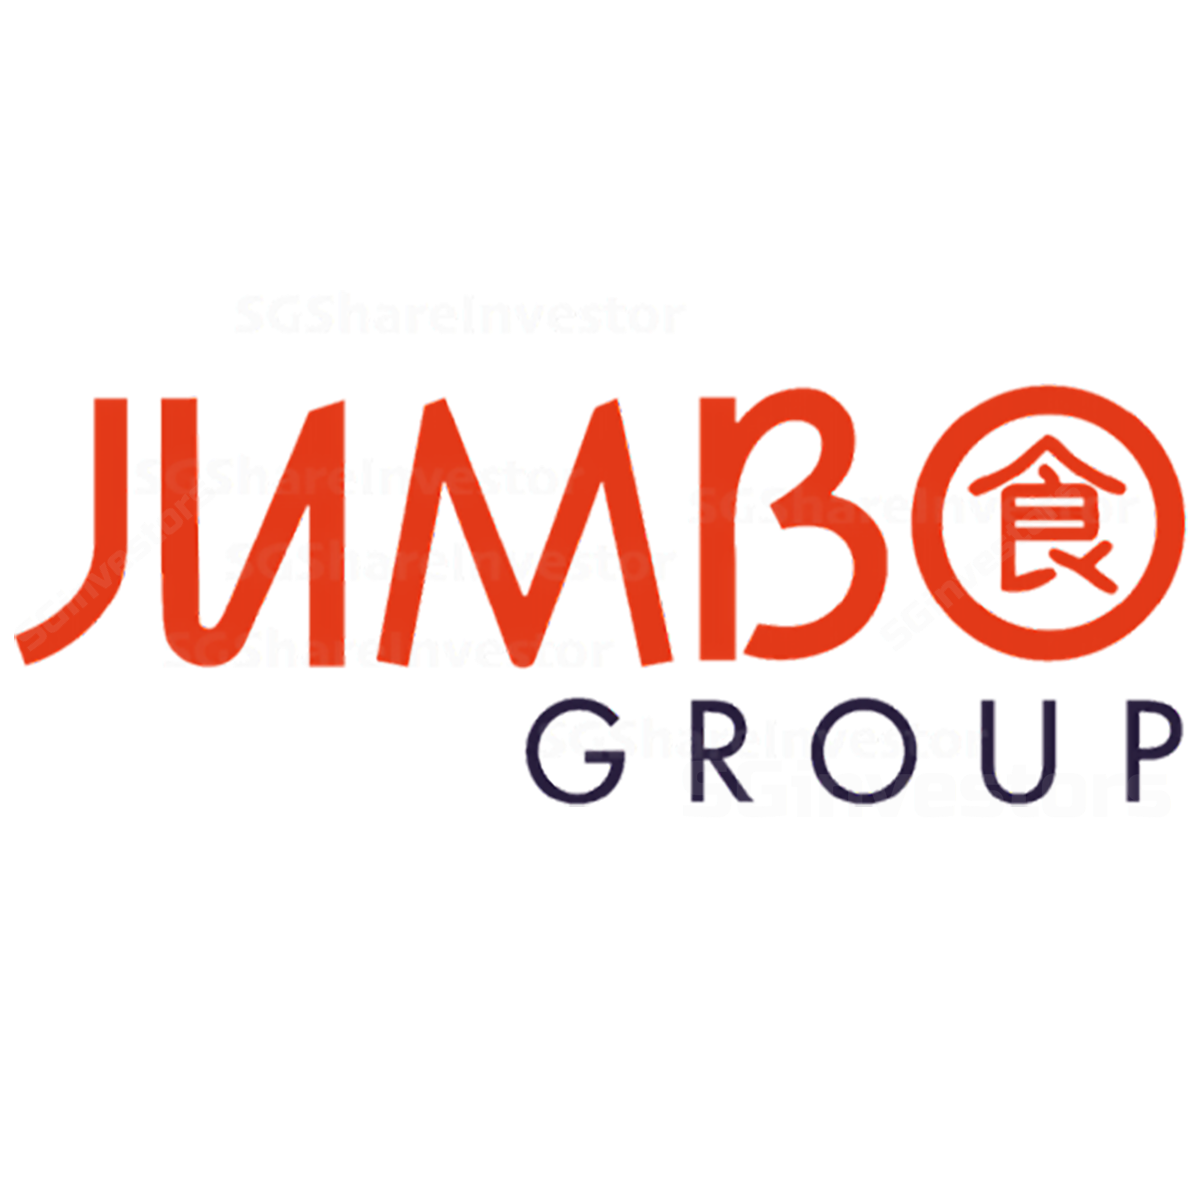 Jumbo Group - DBS Vickers 2017-05-15: Dragged By Singapore Operations